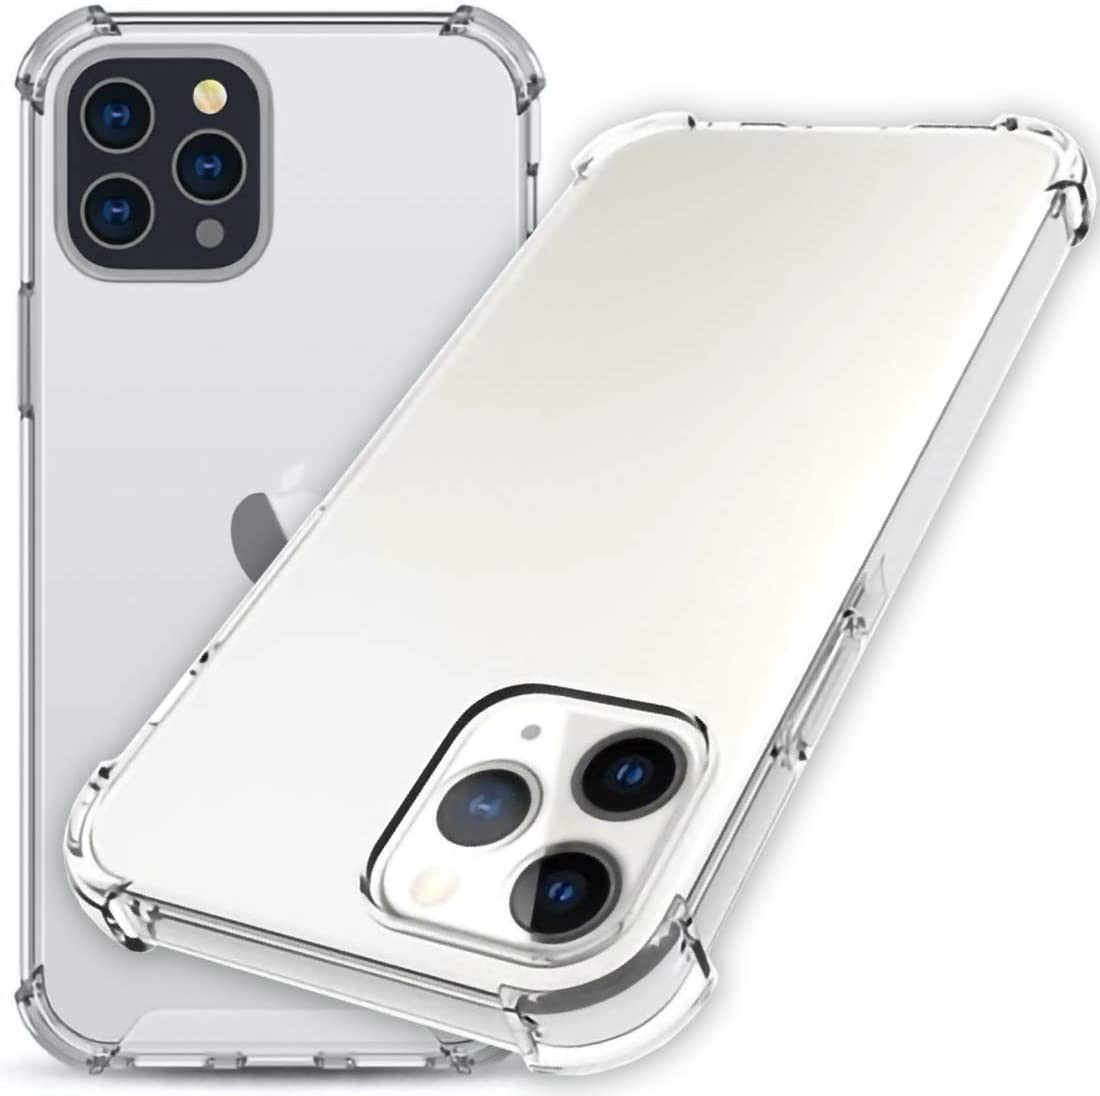 """Wild Tiger Collection Case Compatible with New iPhone 12 / Pro 6.1 Inch [Shockproof Clear Case] Drop Protection Air Corner Bumper & Anti-Scratch [Screen Protector Friendly] (iPhone 12 / Pro 6.1"""")"""